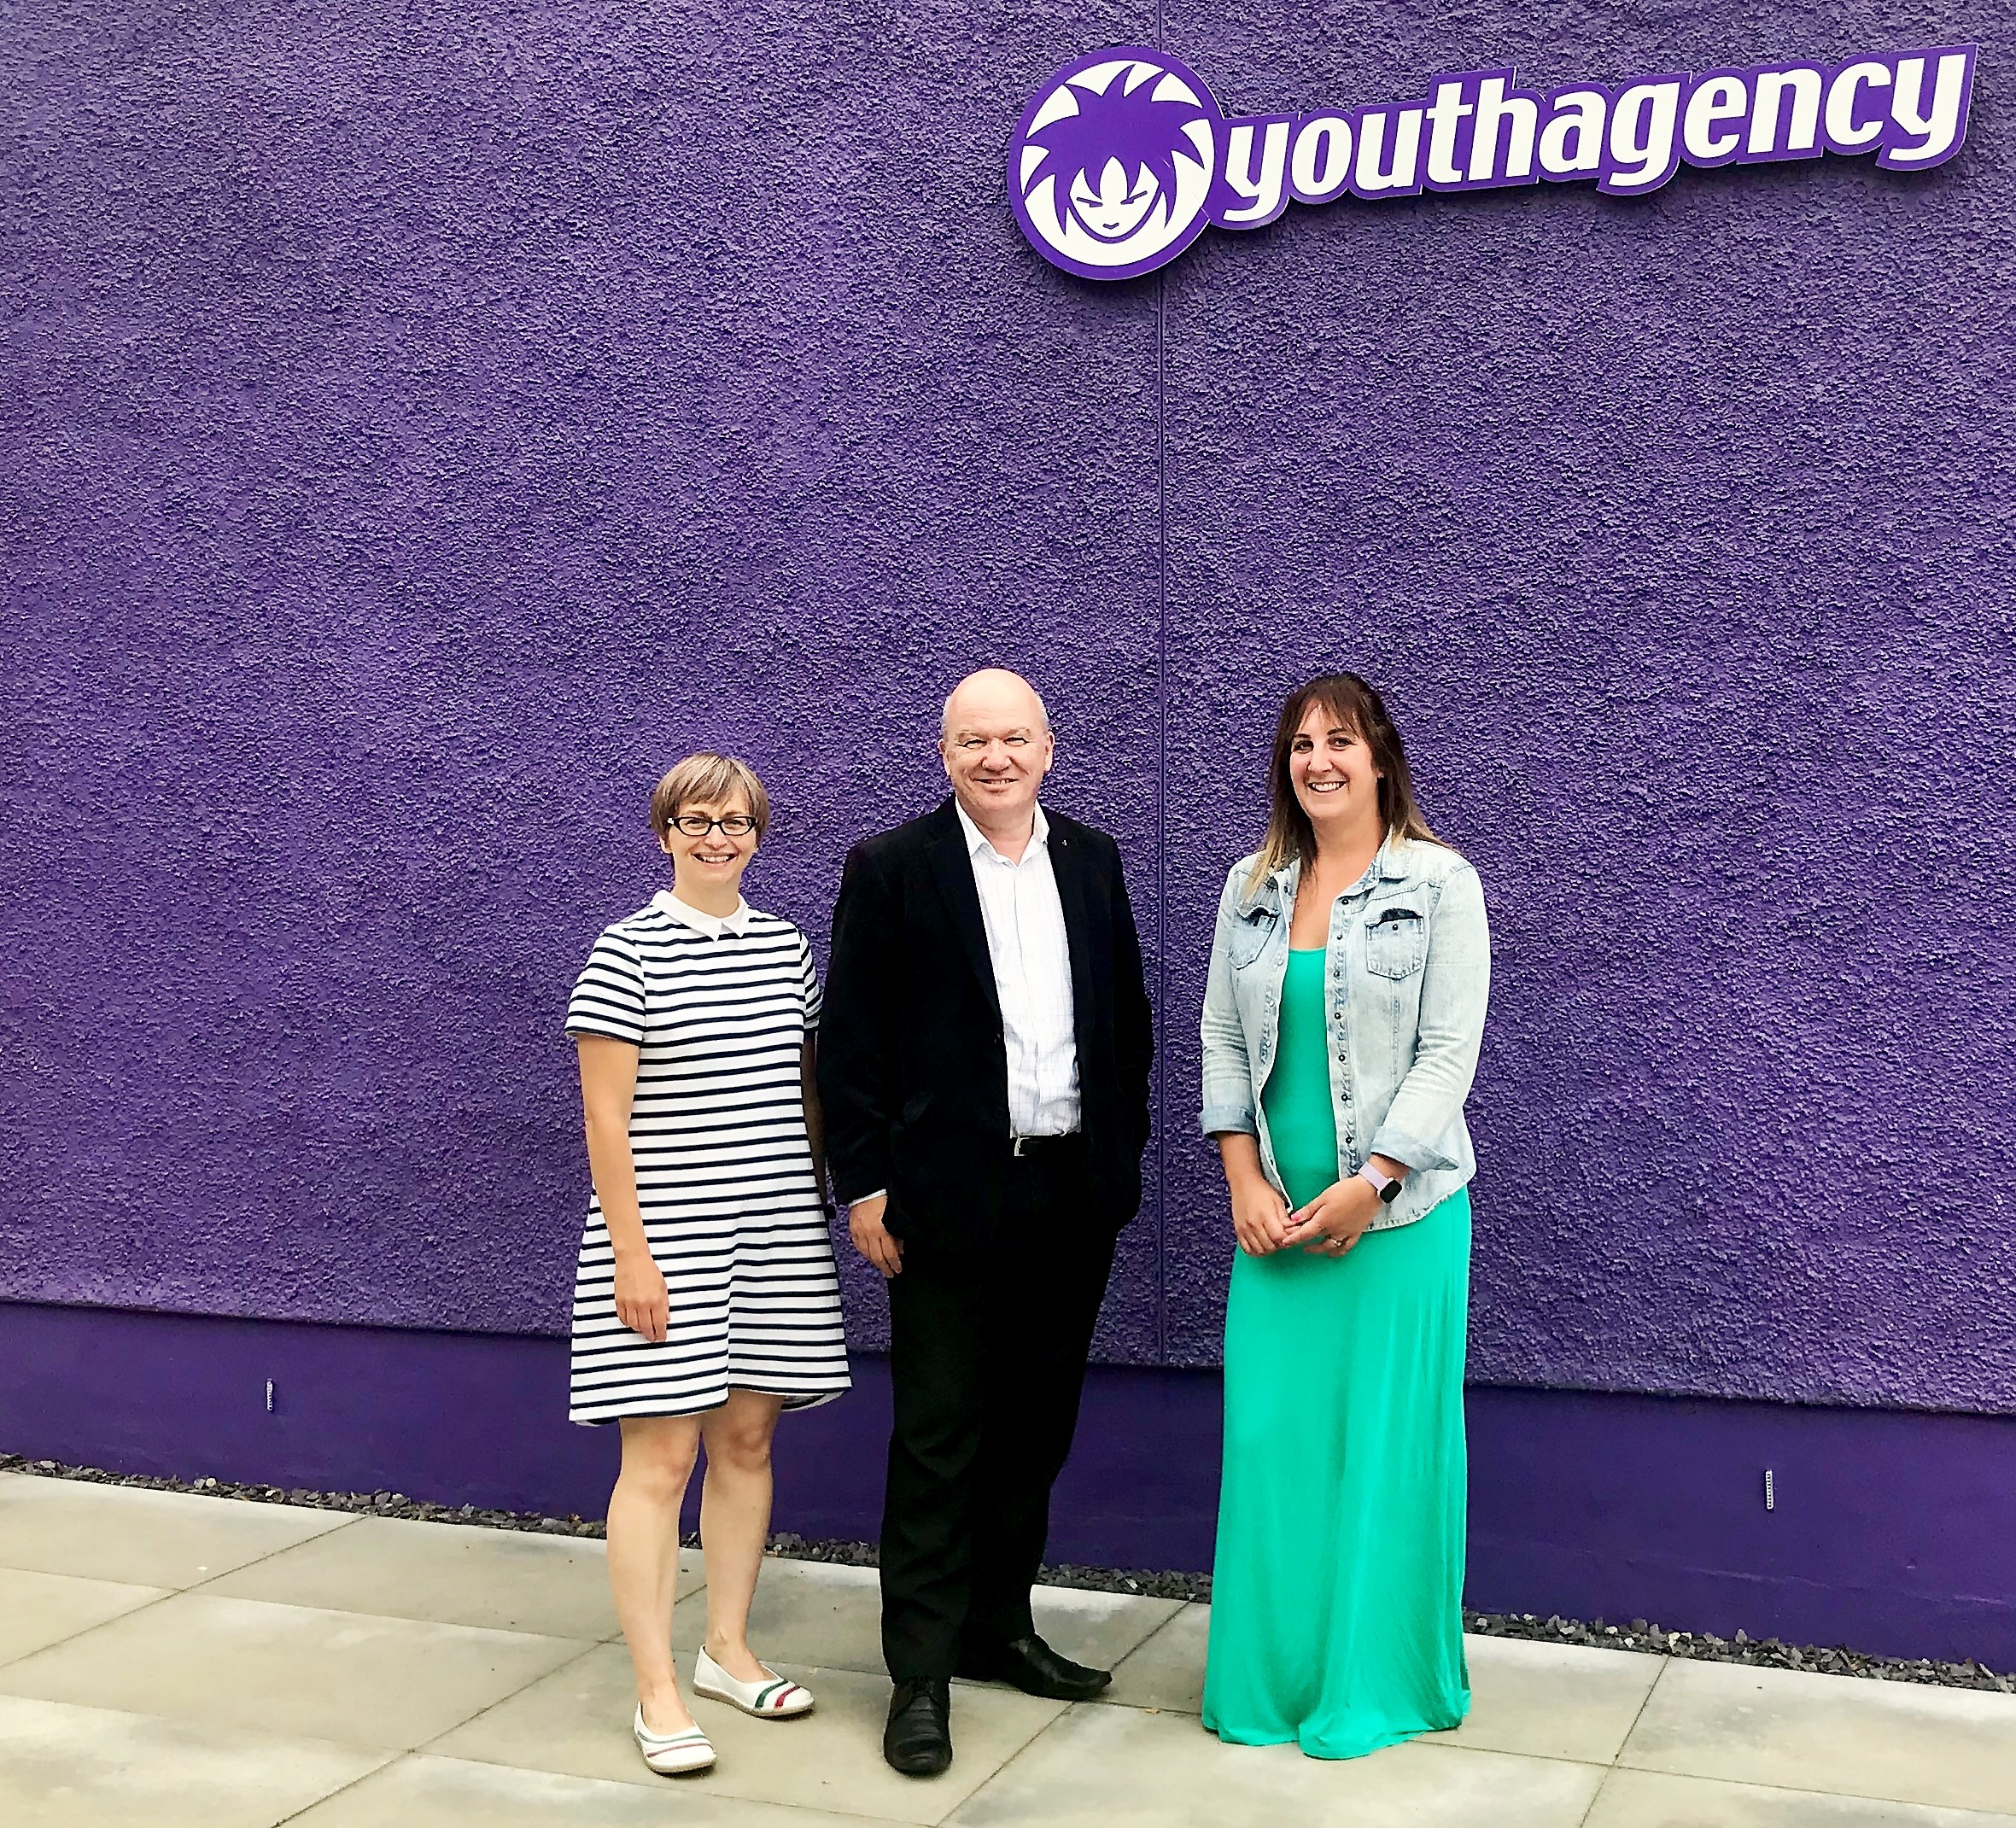 Visiting the local Youth Agency